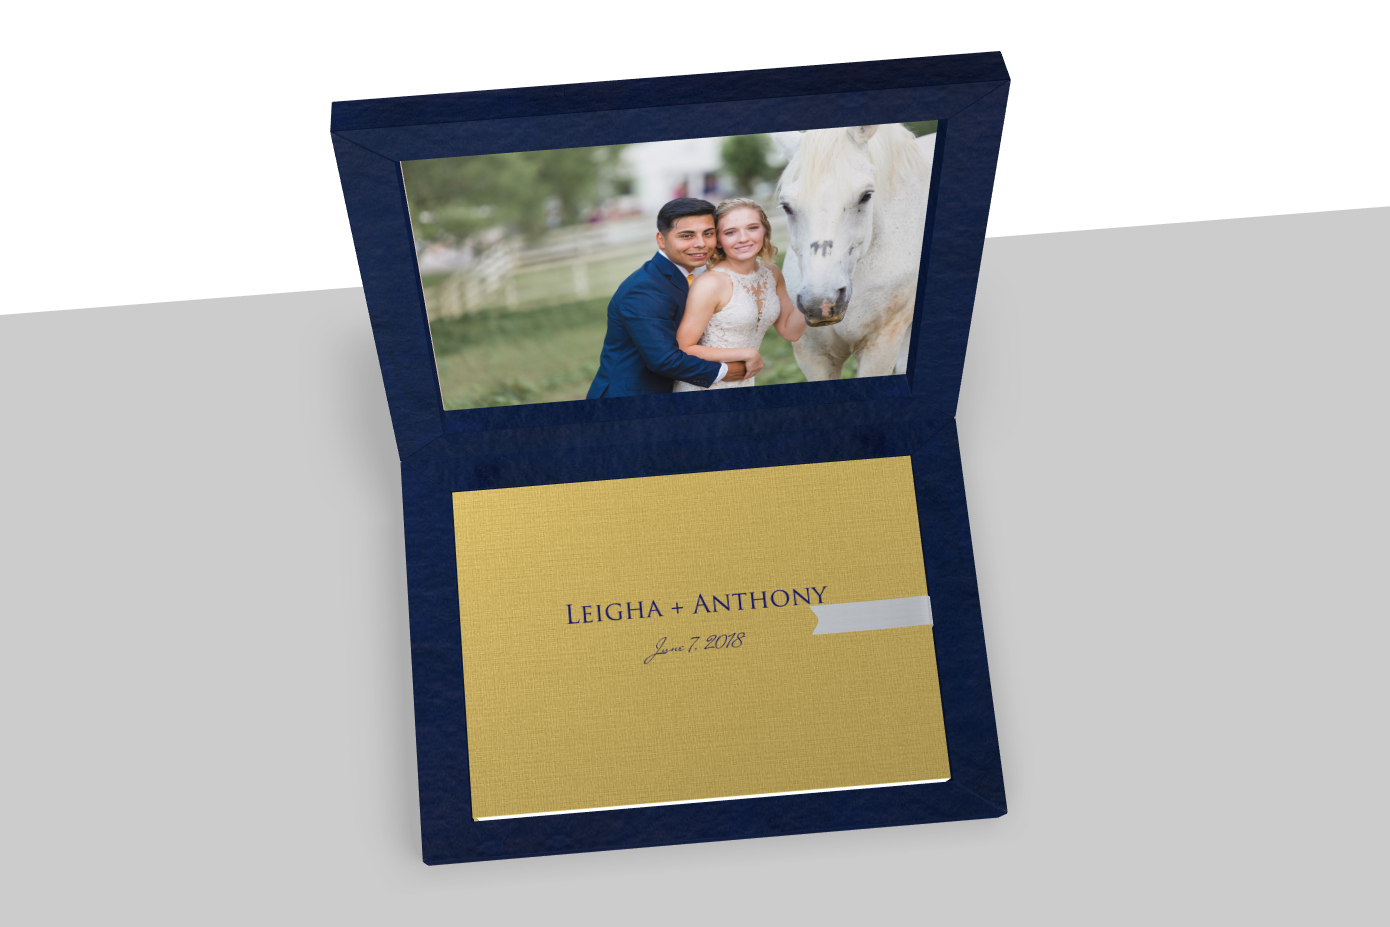 another online mockup so the couple can see what to expect from the finished product.